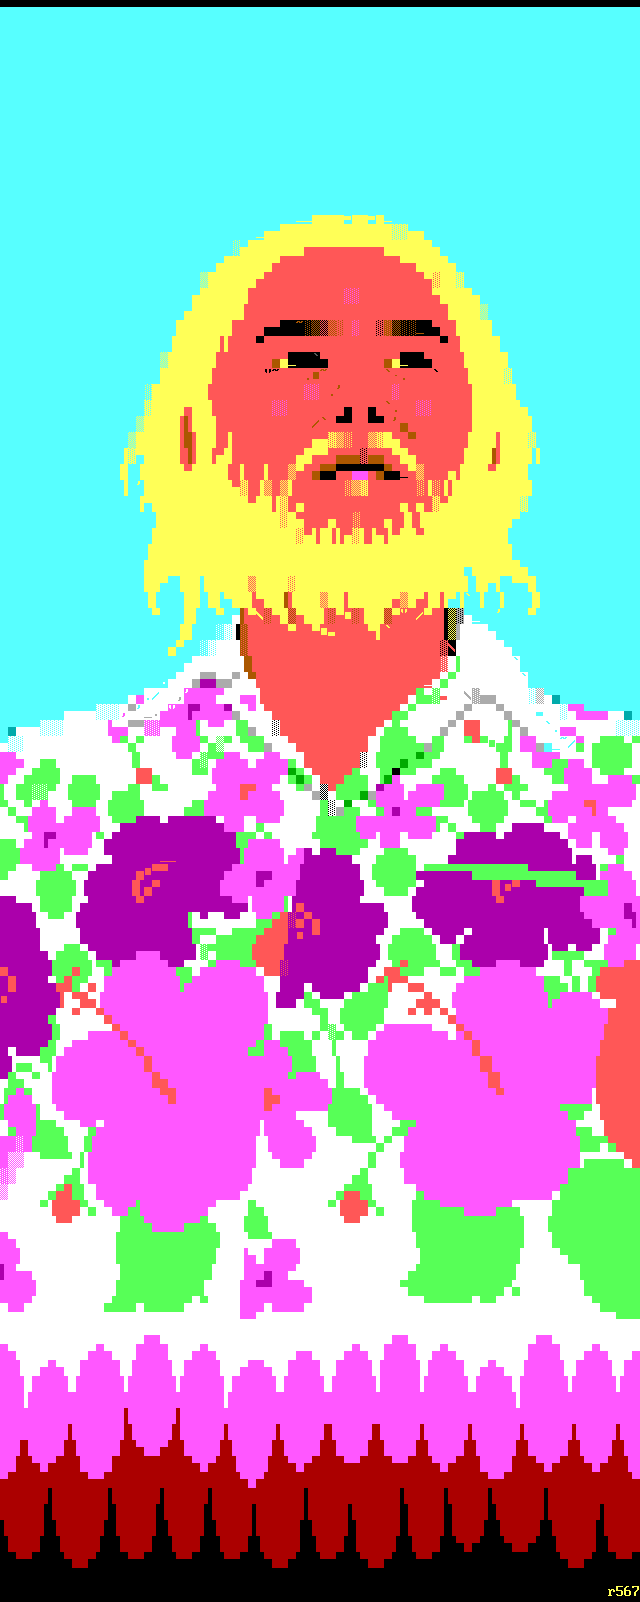 purple, white, cyan, yellow, red, green, flower, flowers, japan, japanese, reset, r5, reset survivor, portrait, man